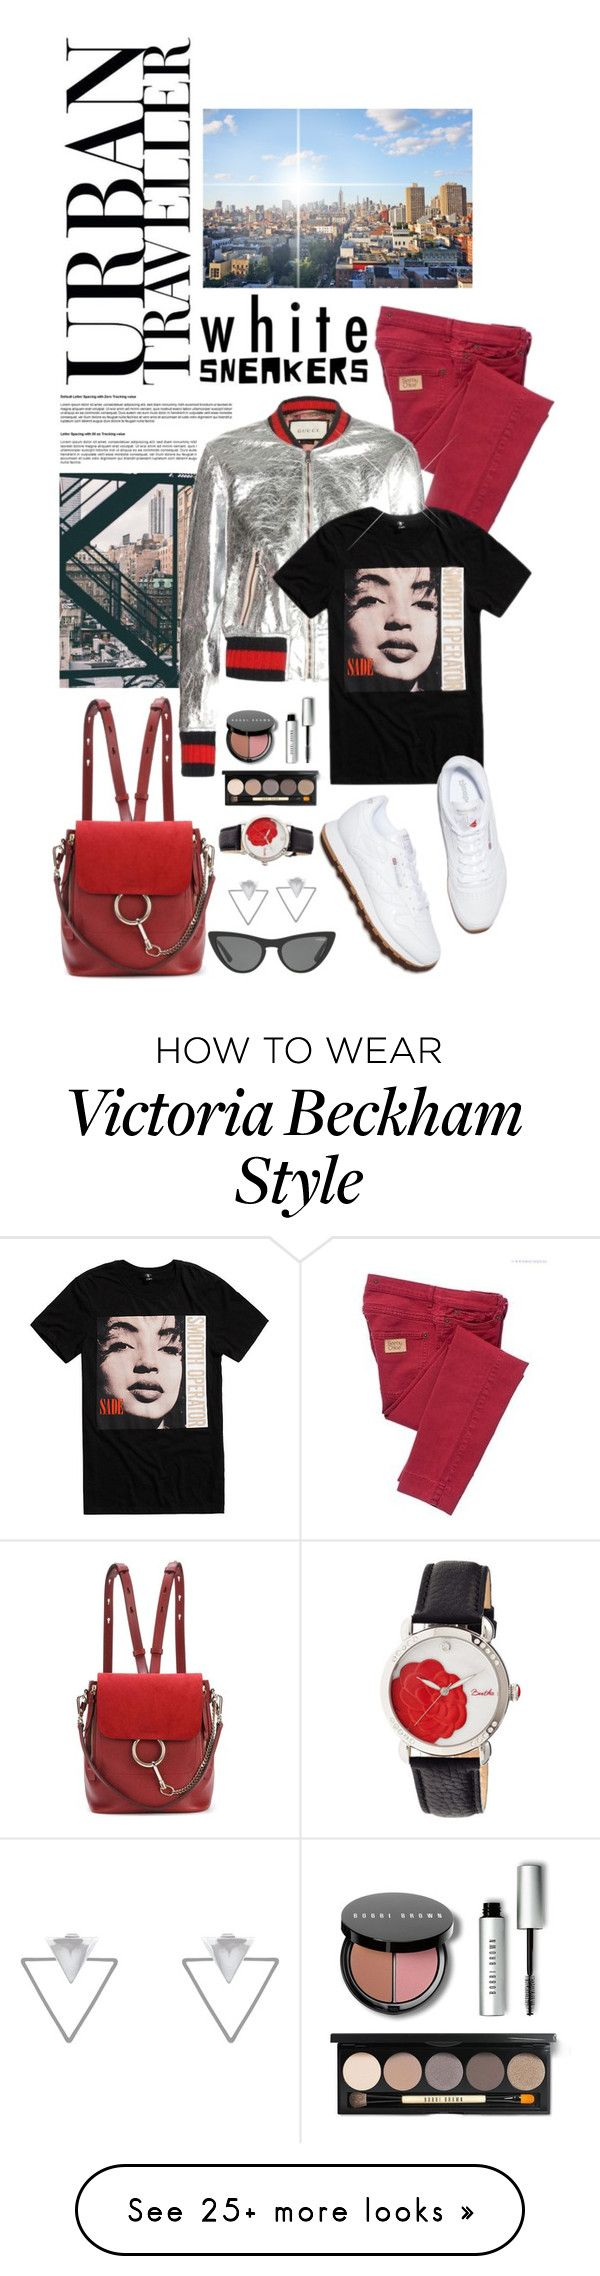 """""""So Fresh: White Sneakers"""" by shortyluv718 on Polyvore featuring See by Chloé, Gucci, Bobbi Brown Cosmetics, Chloé, Bertha, Eloquii, Eddie Borgo, Victoria, Victoria Beckham and whitesneakers"""